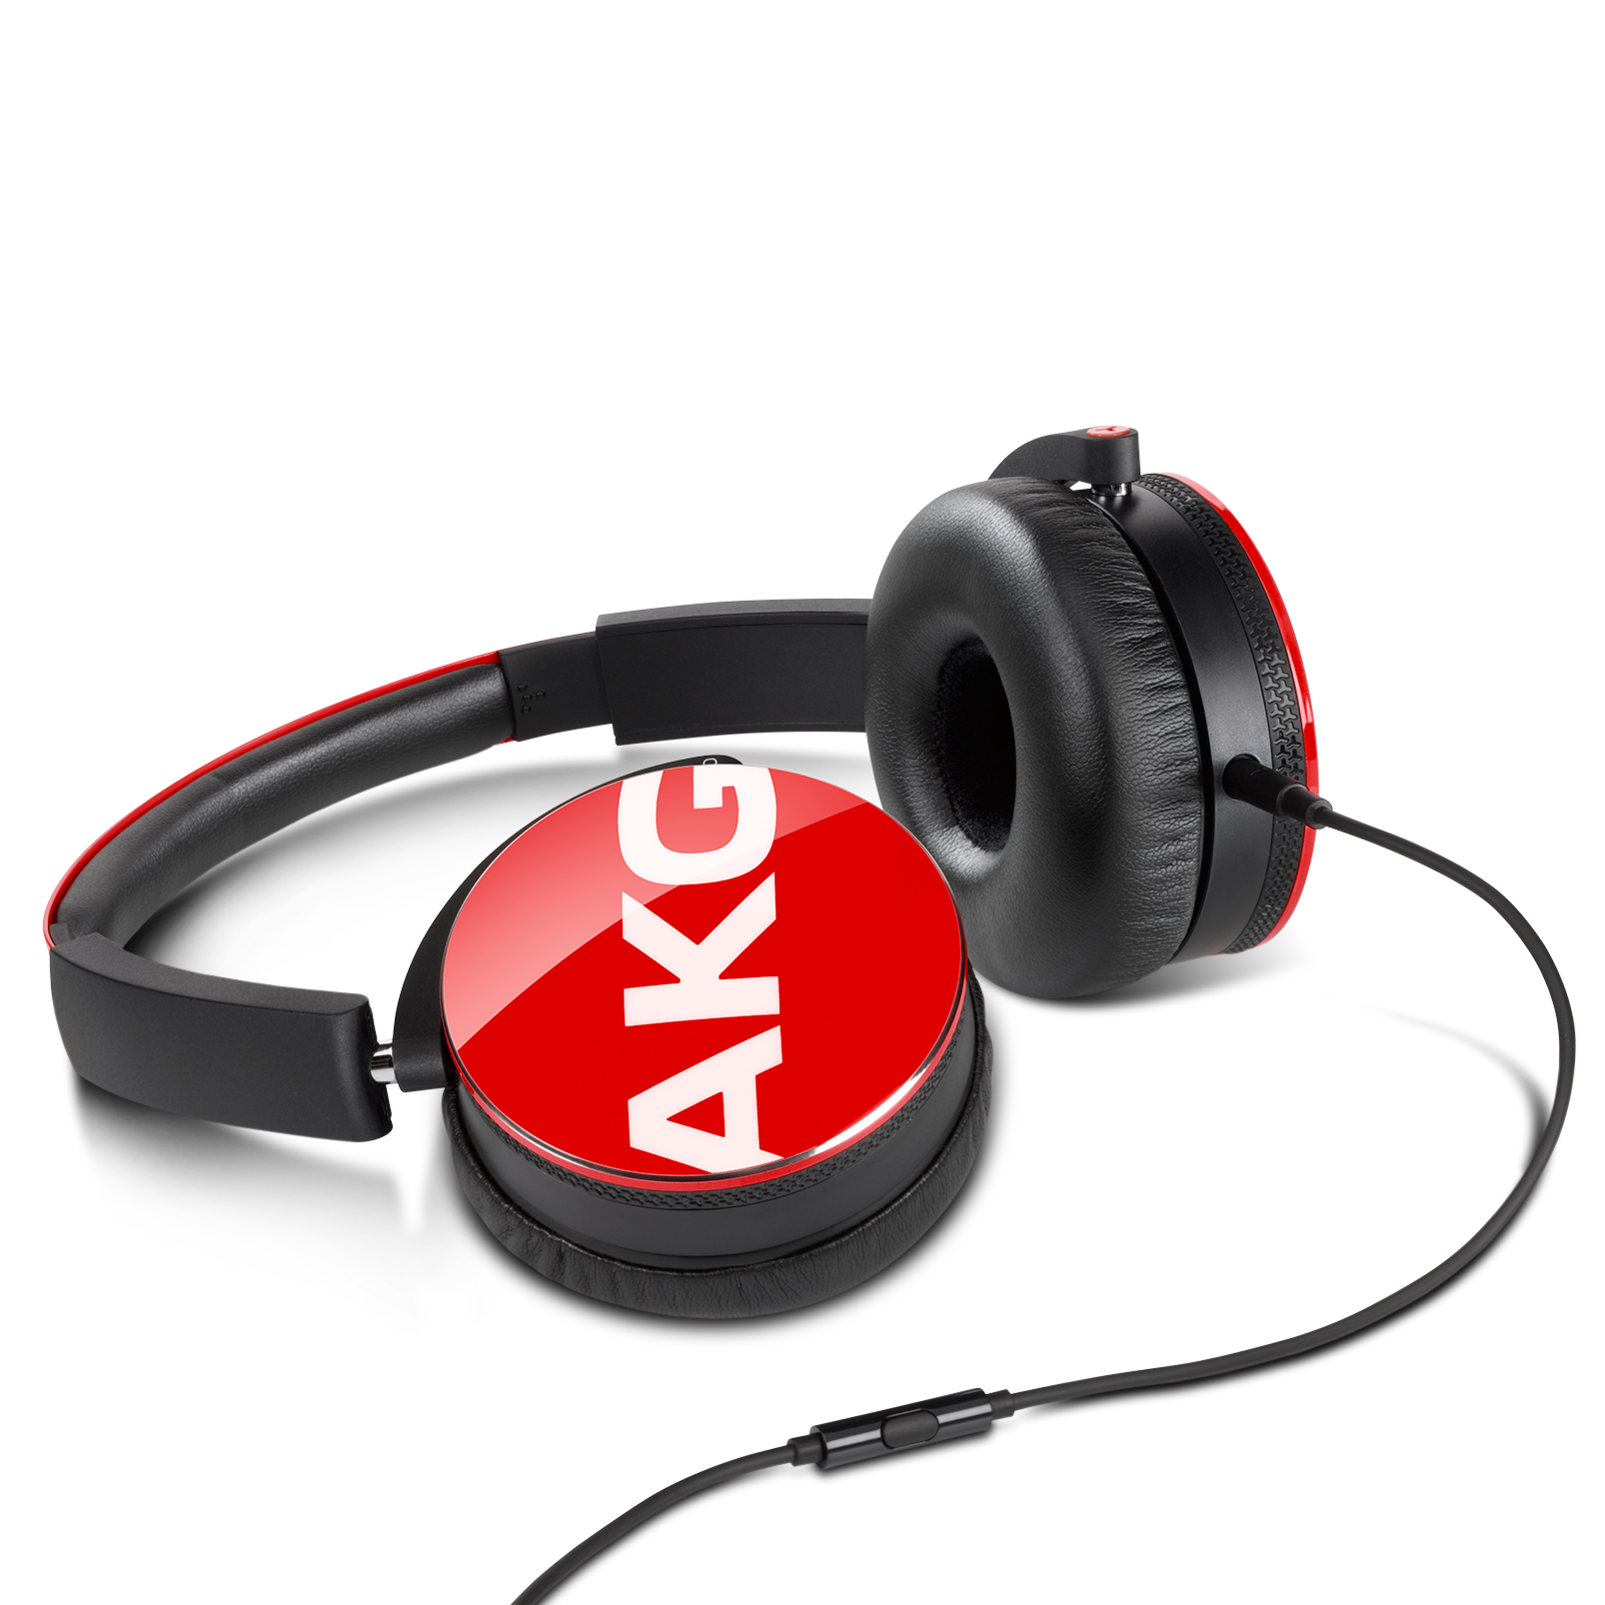 Y50 - Red - On-ear headphones with AKG-quality sound, smart styling, snug fit and detachable cable with in-line remote/mic - Detailshot 3